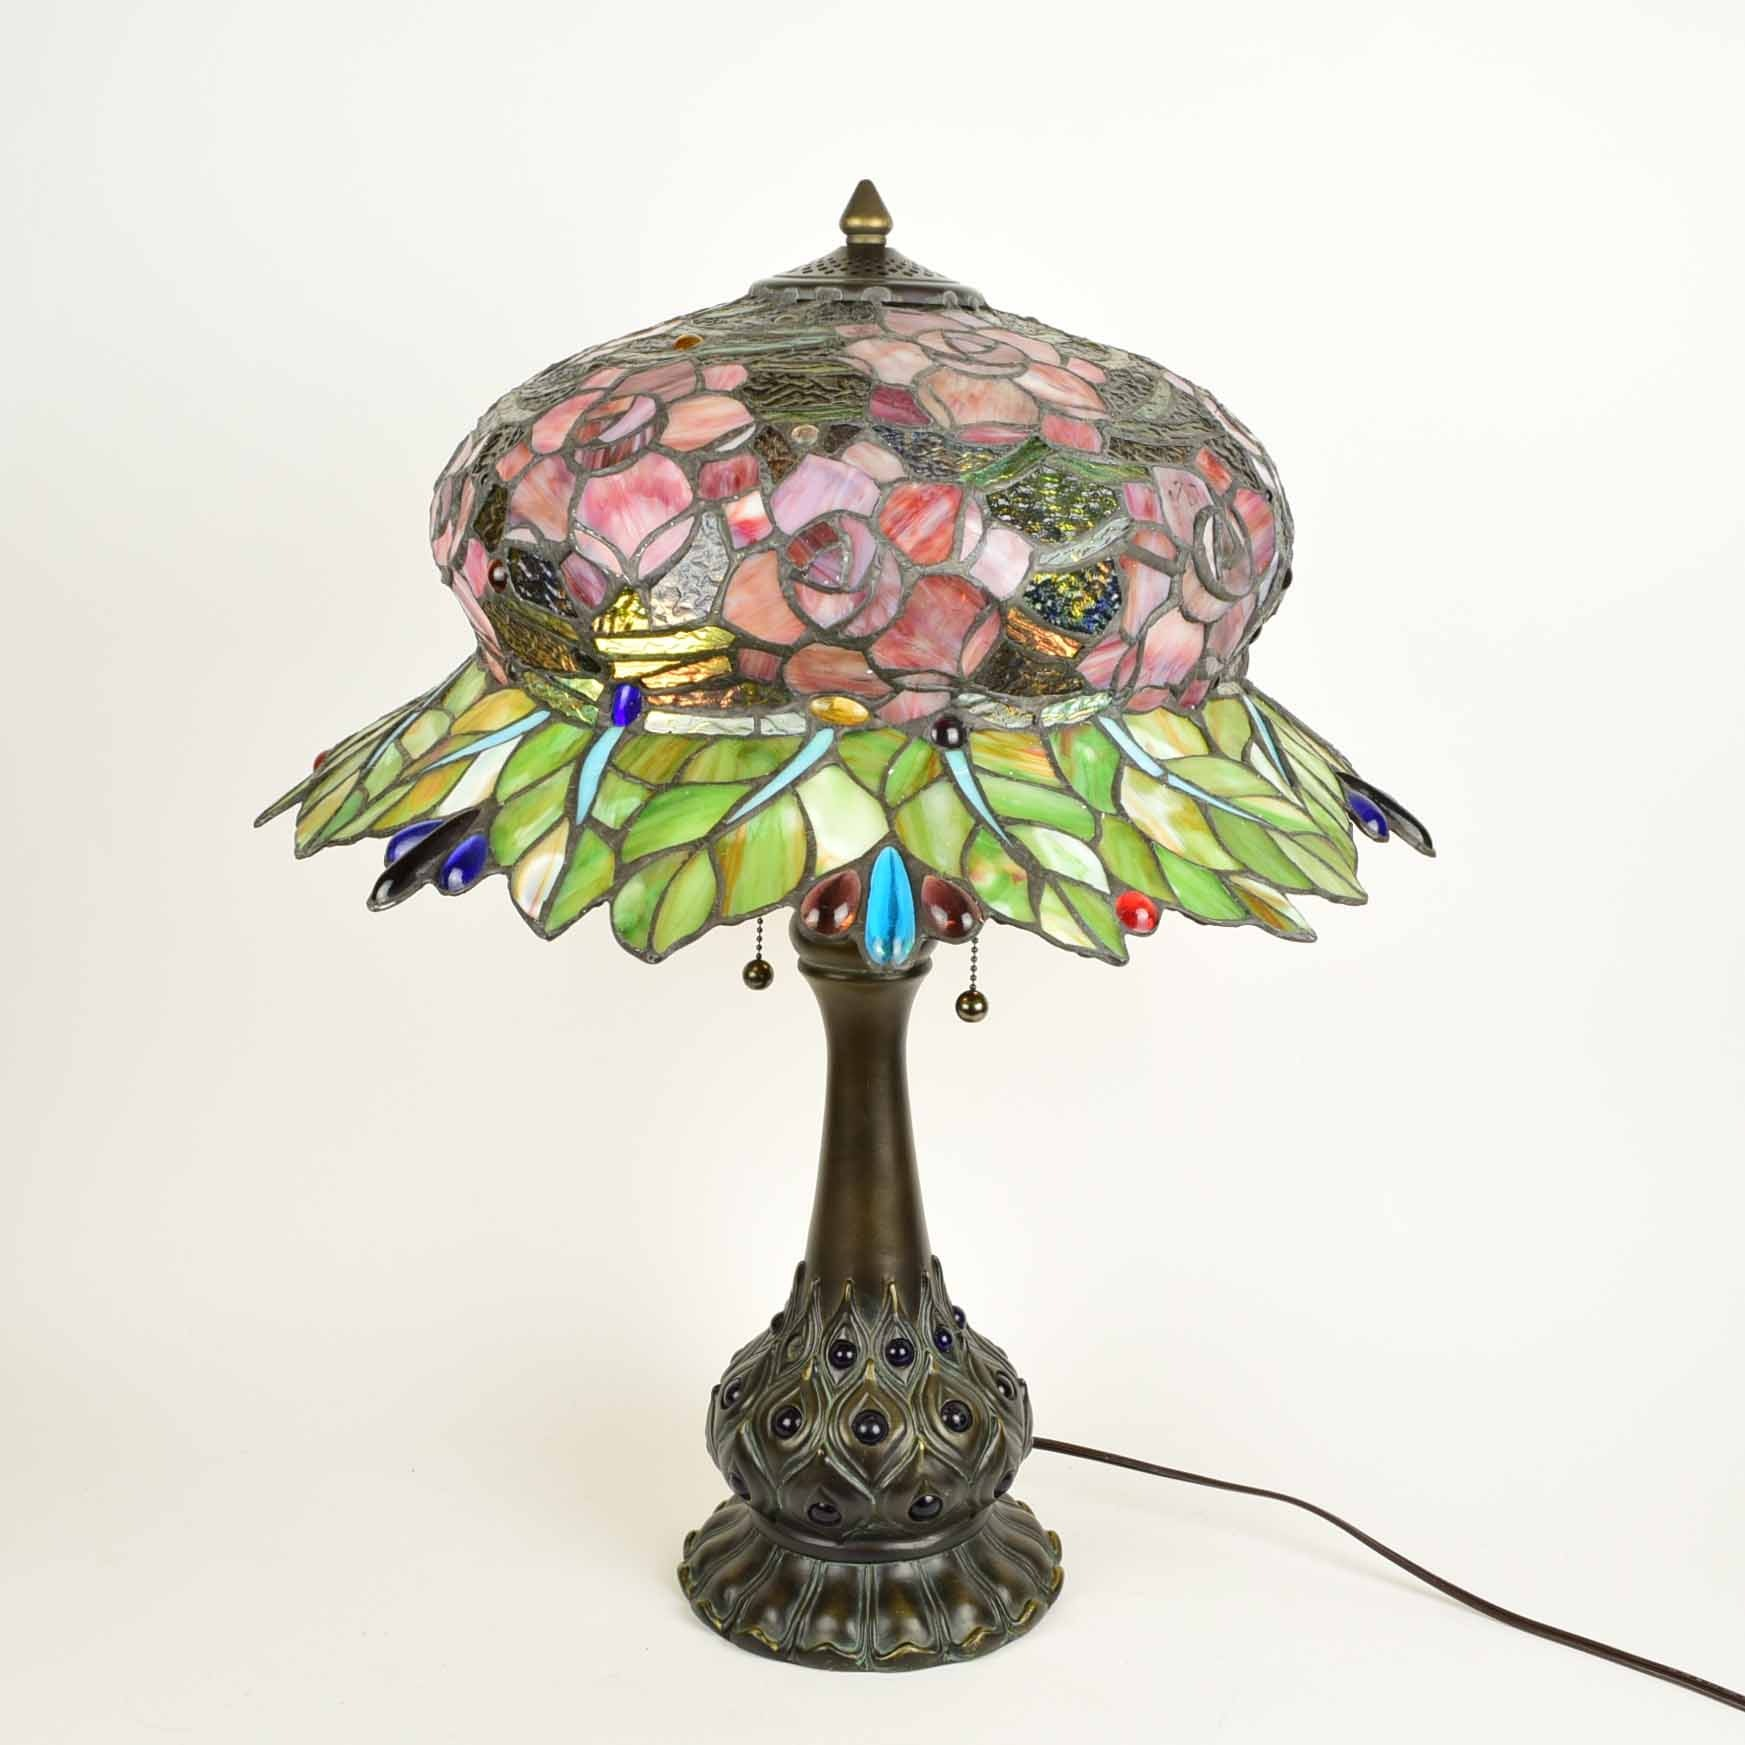 Tiffany Style Bonnet Shade Stained Glass Peacock Lamp ...